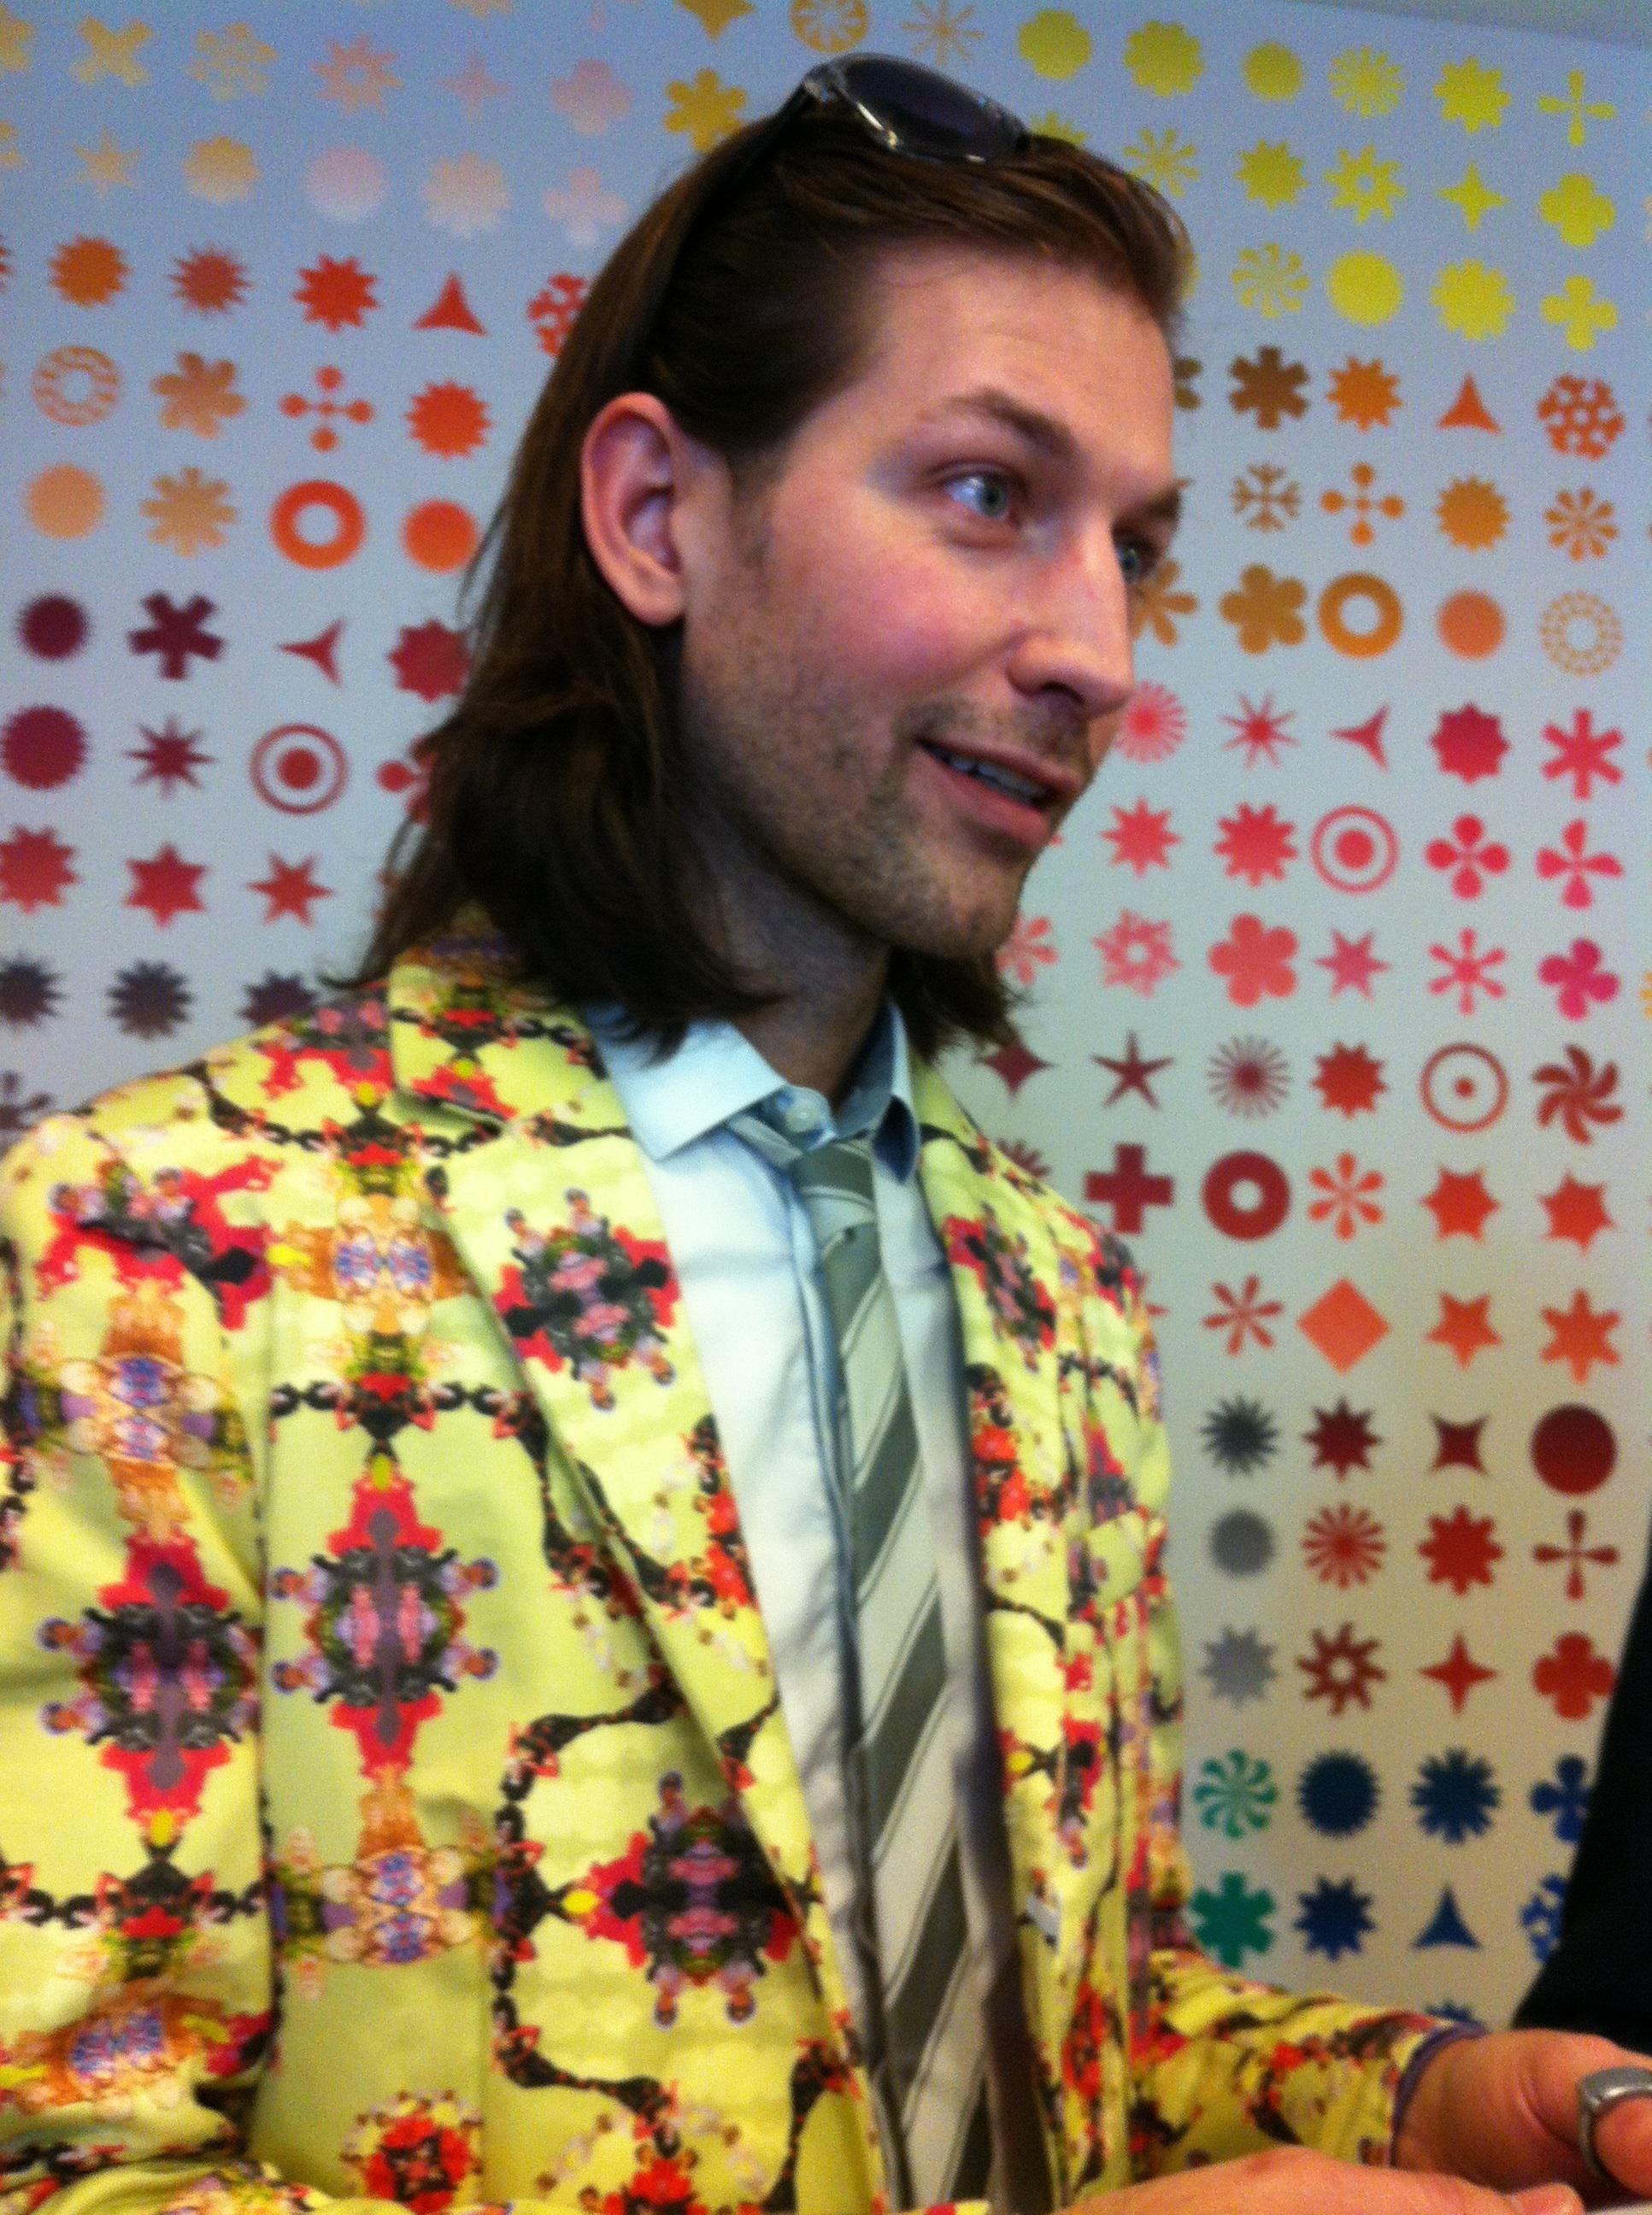 7ec9974cd5b7 One of the best outfits at the exhibit wasn't actually part of the show:  Museumgoer Aaron Peterman designed and made this suit, with its pattern of  ...